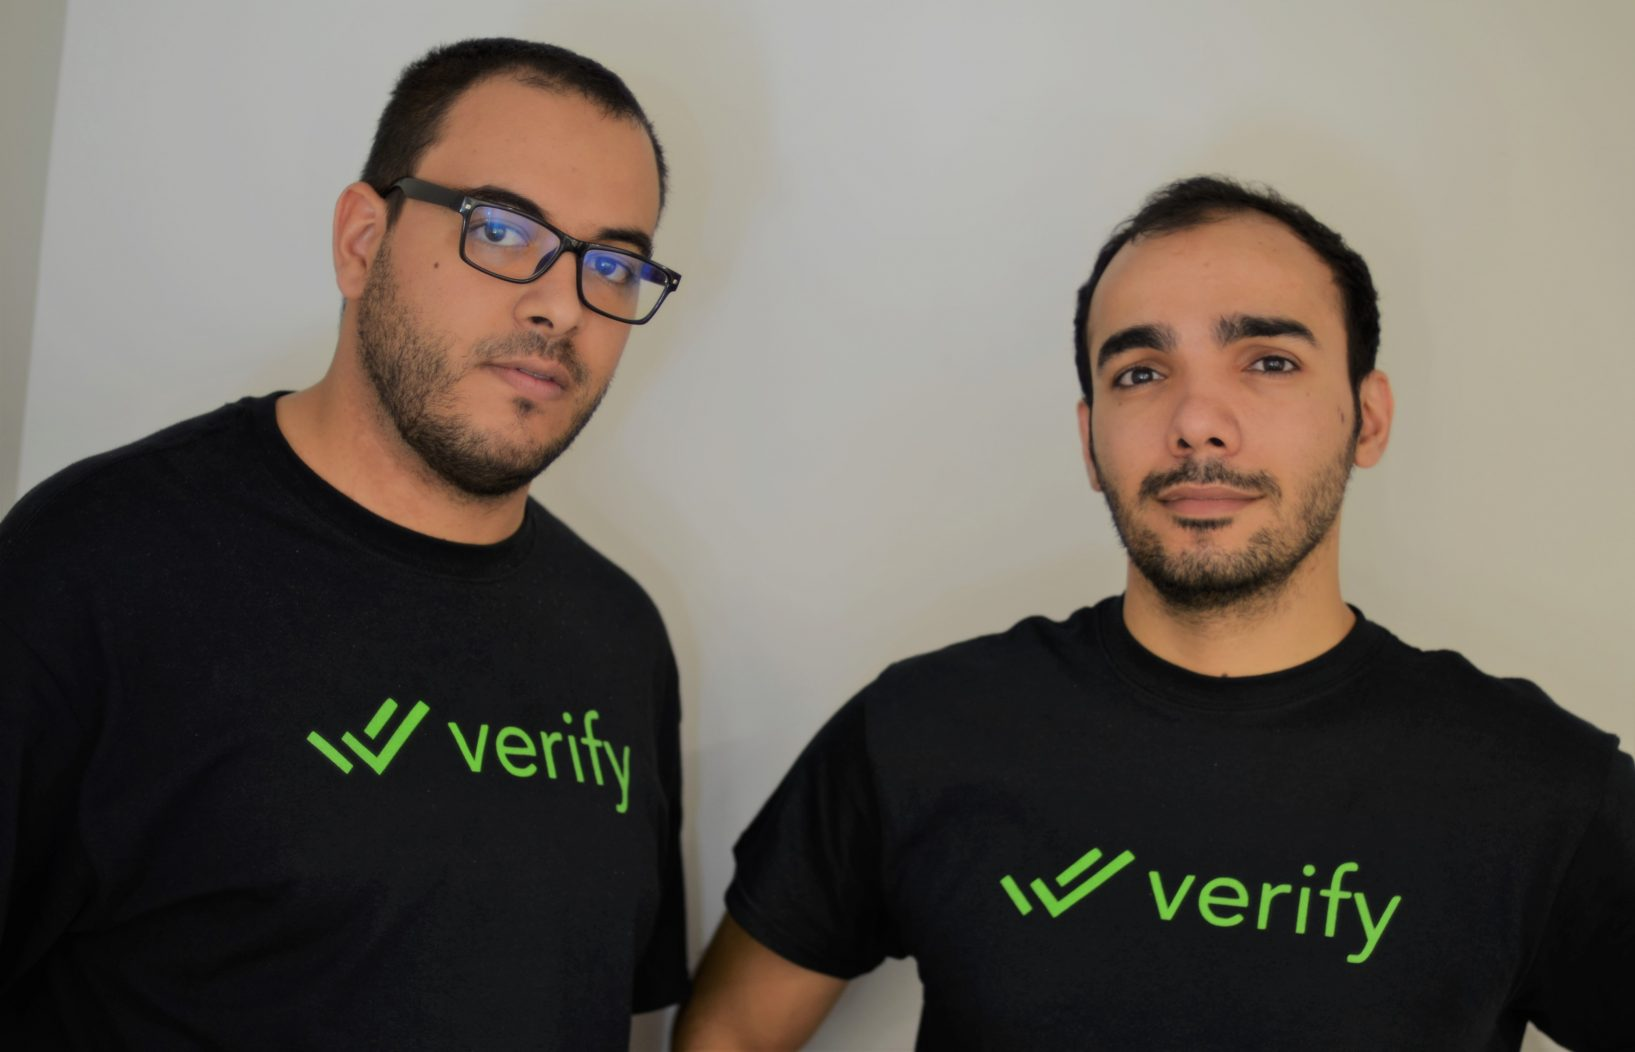 Cryptocurrency Startup Verify Raises $2.5 Million in ICO